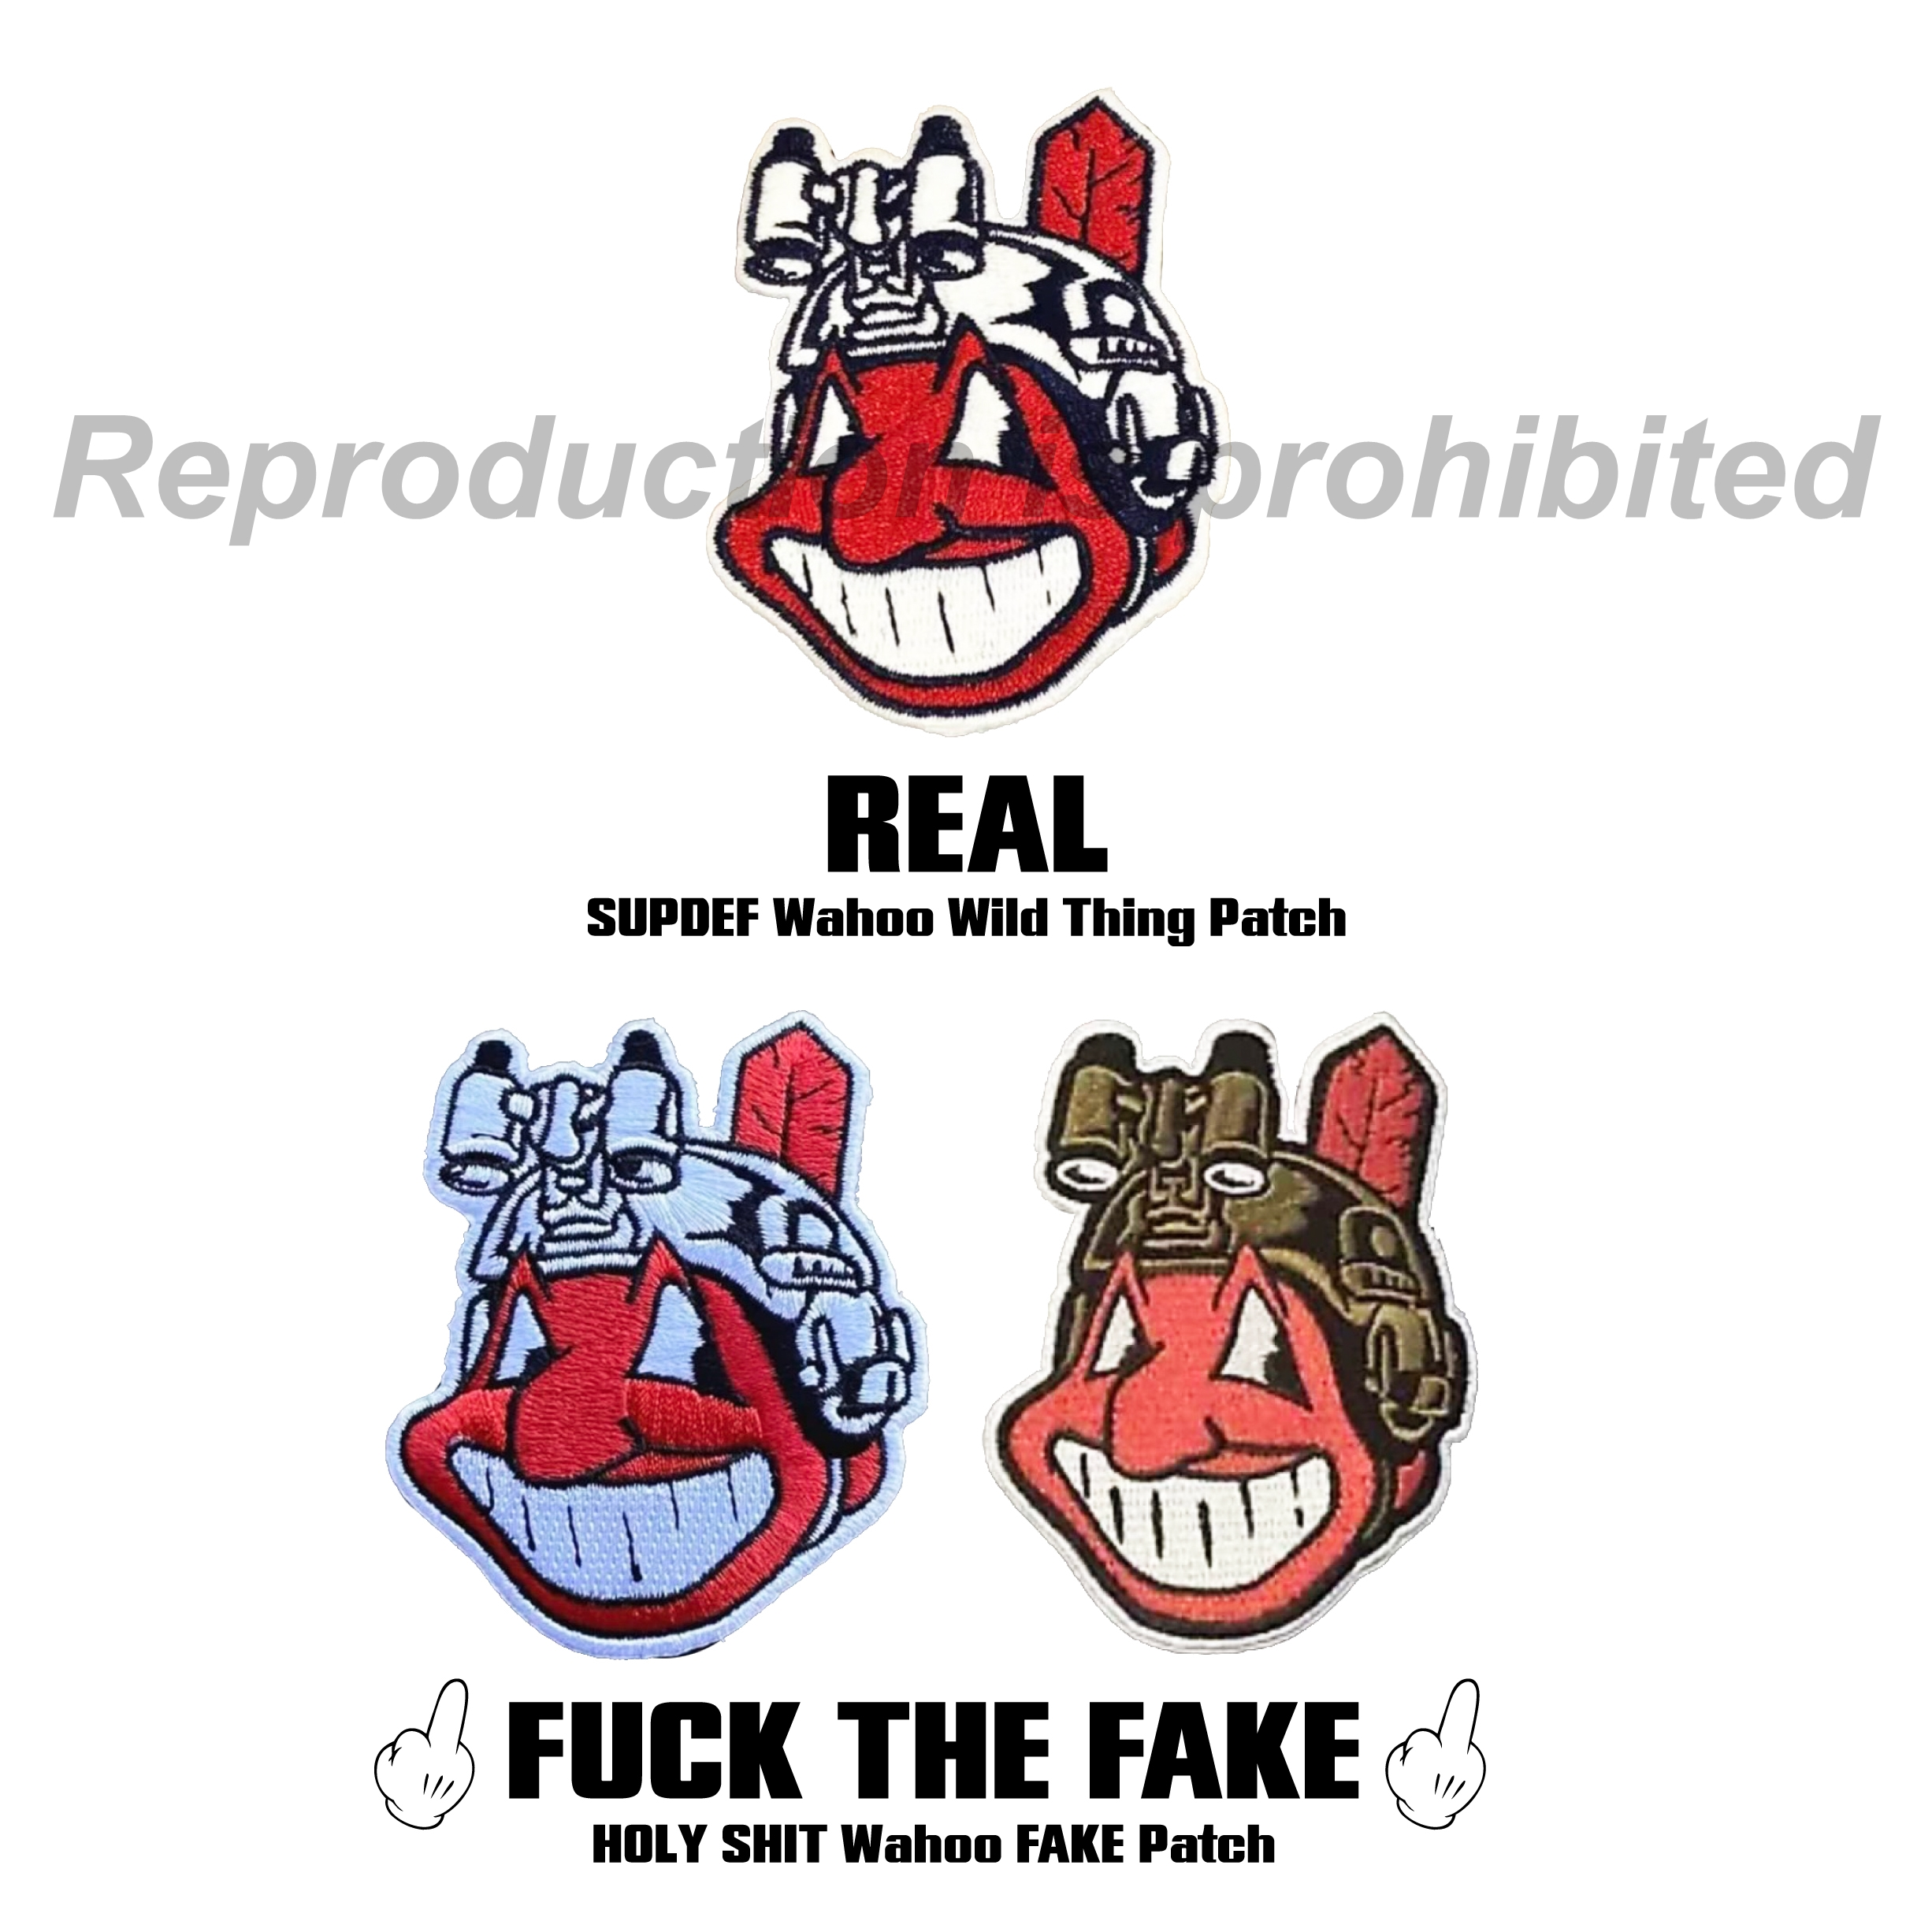 Superior Defense SUPDEF Wahoo Wild Thing Patch REAL or FAKE FUCK THE FAKE